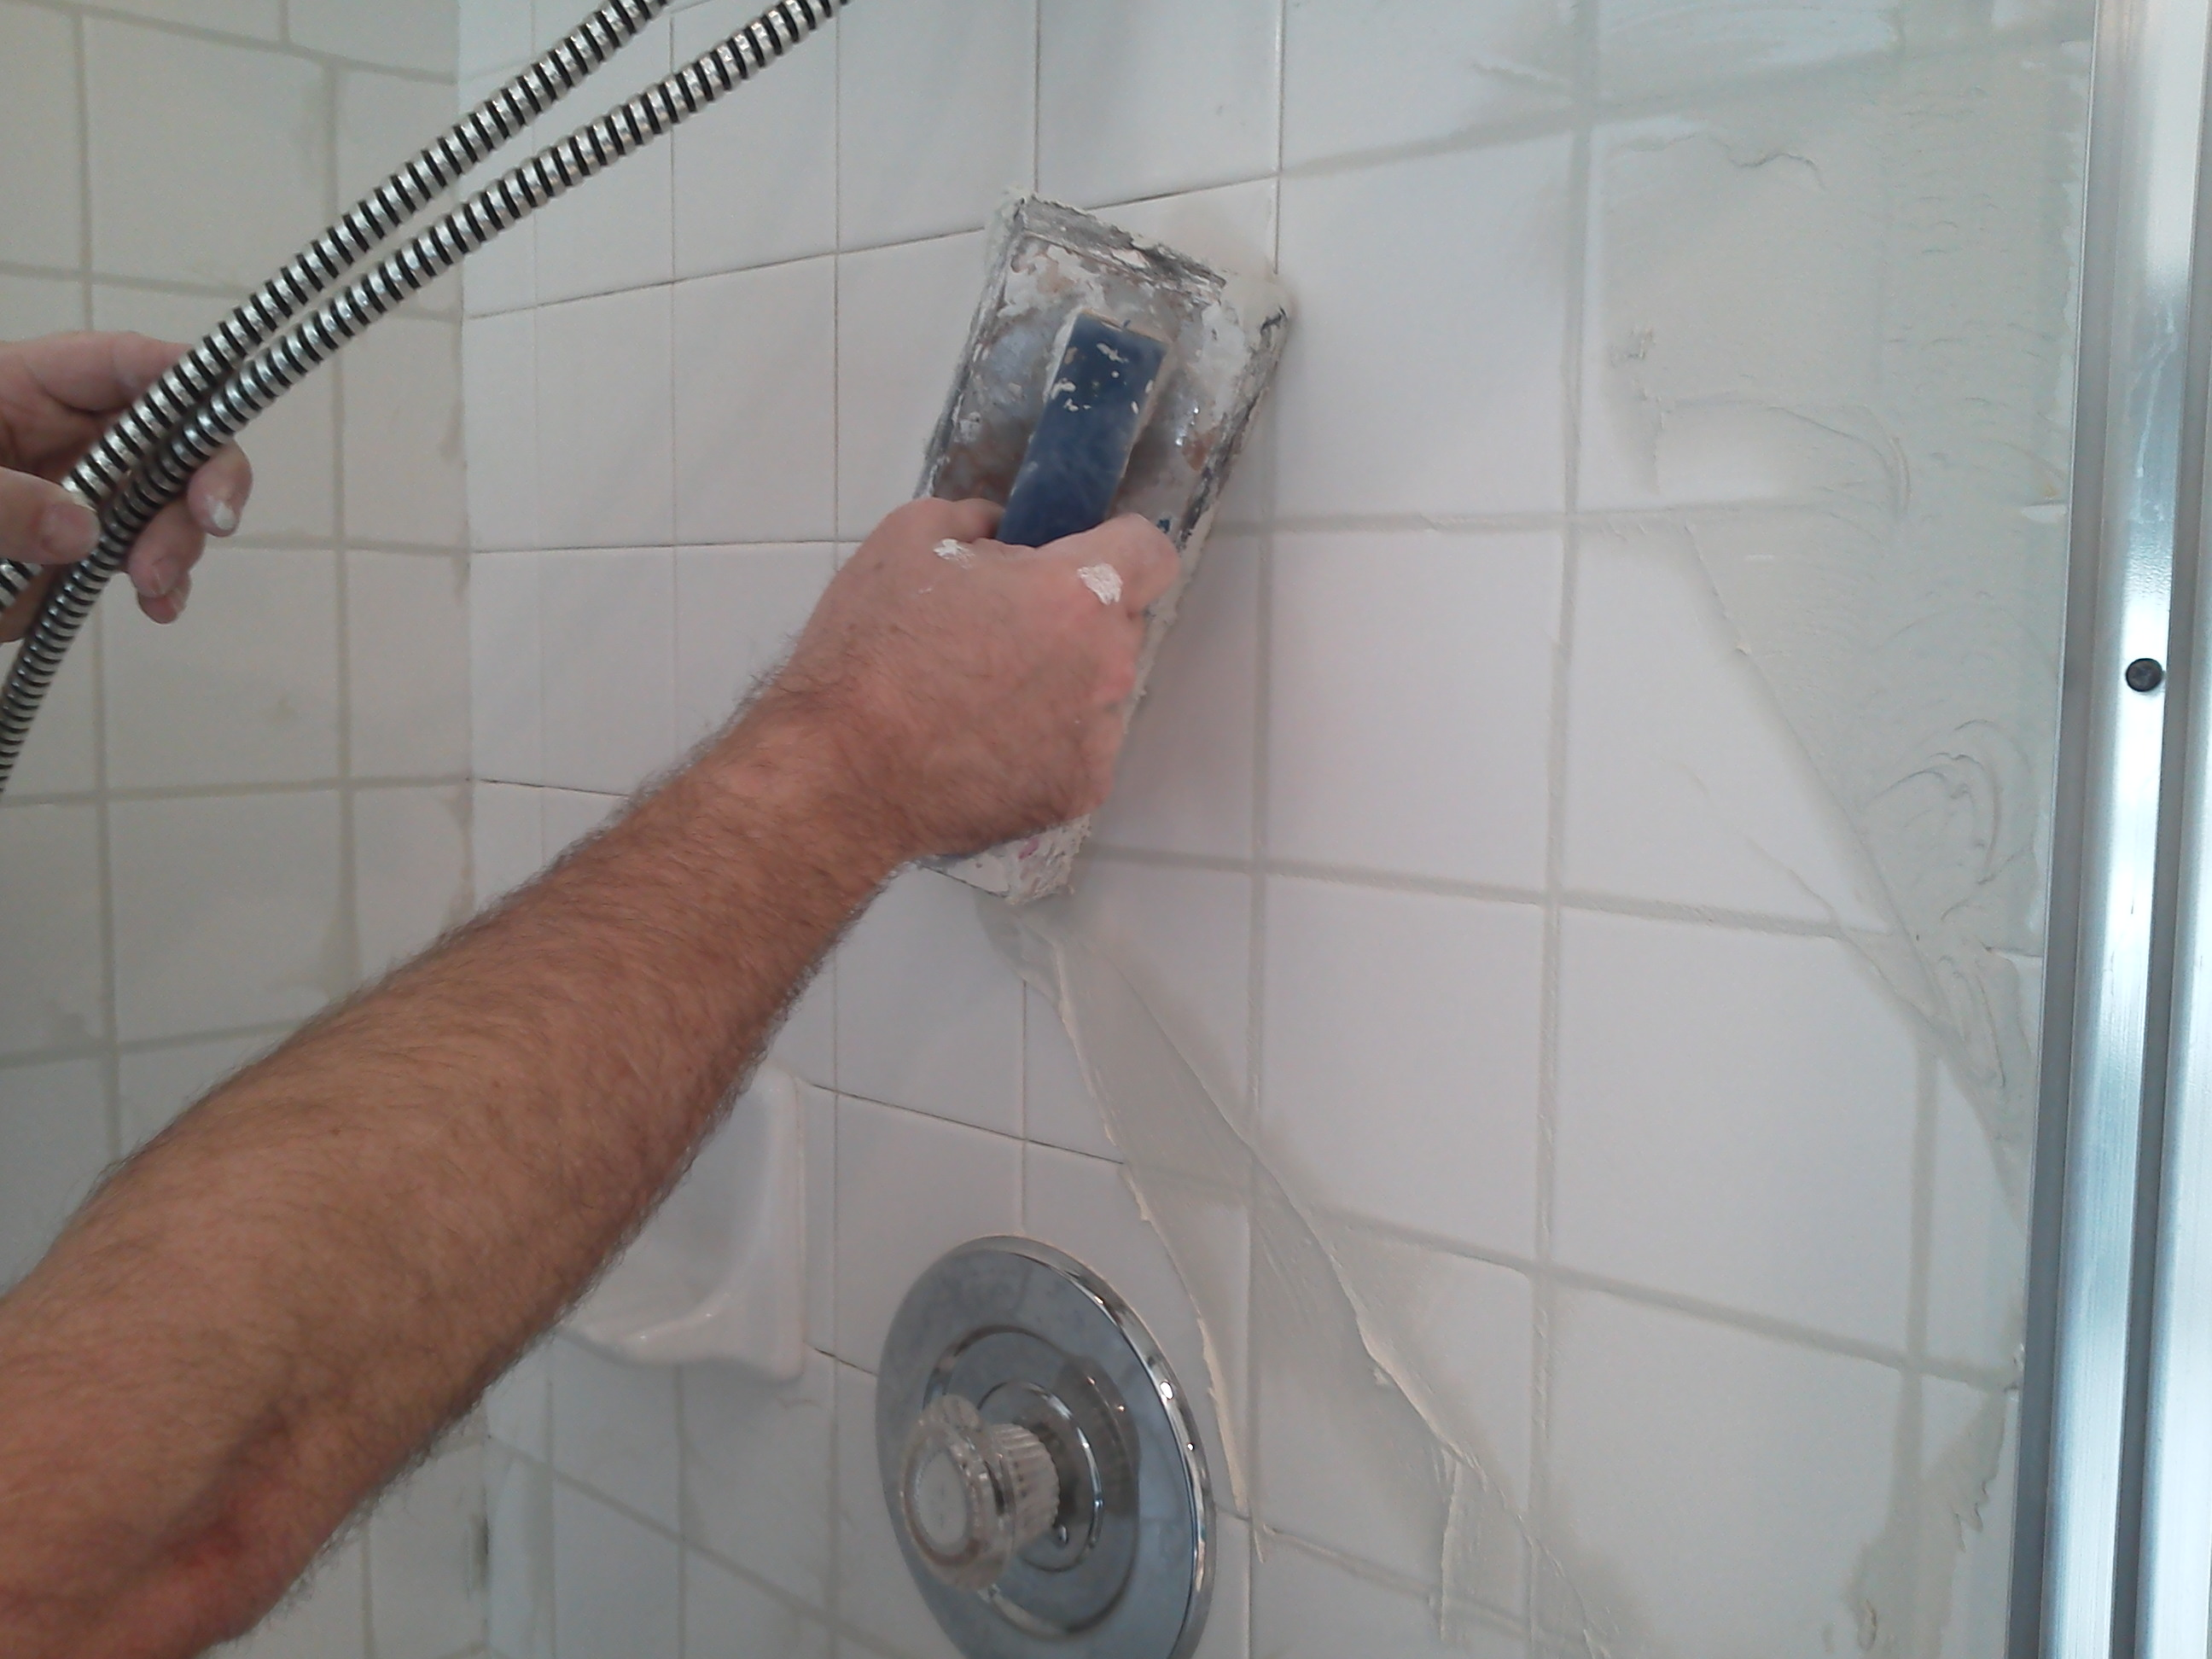 Sleek Regrouting Showers Is Something We How To Regrout A Shower Tile Carpet Cleaning How To Regrout Tiles Bunnings How To Regrout Tile Bathroom houzz-02 How To Regrout Tile